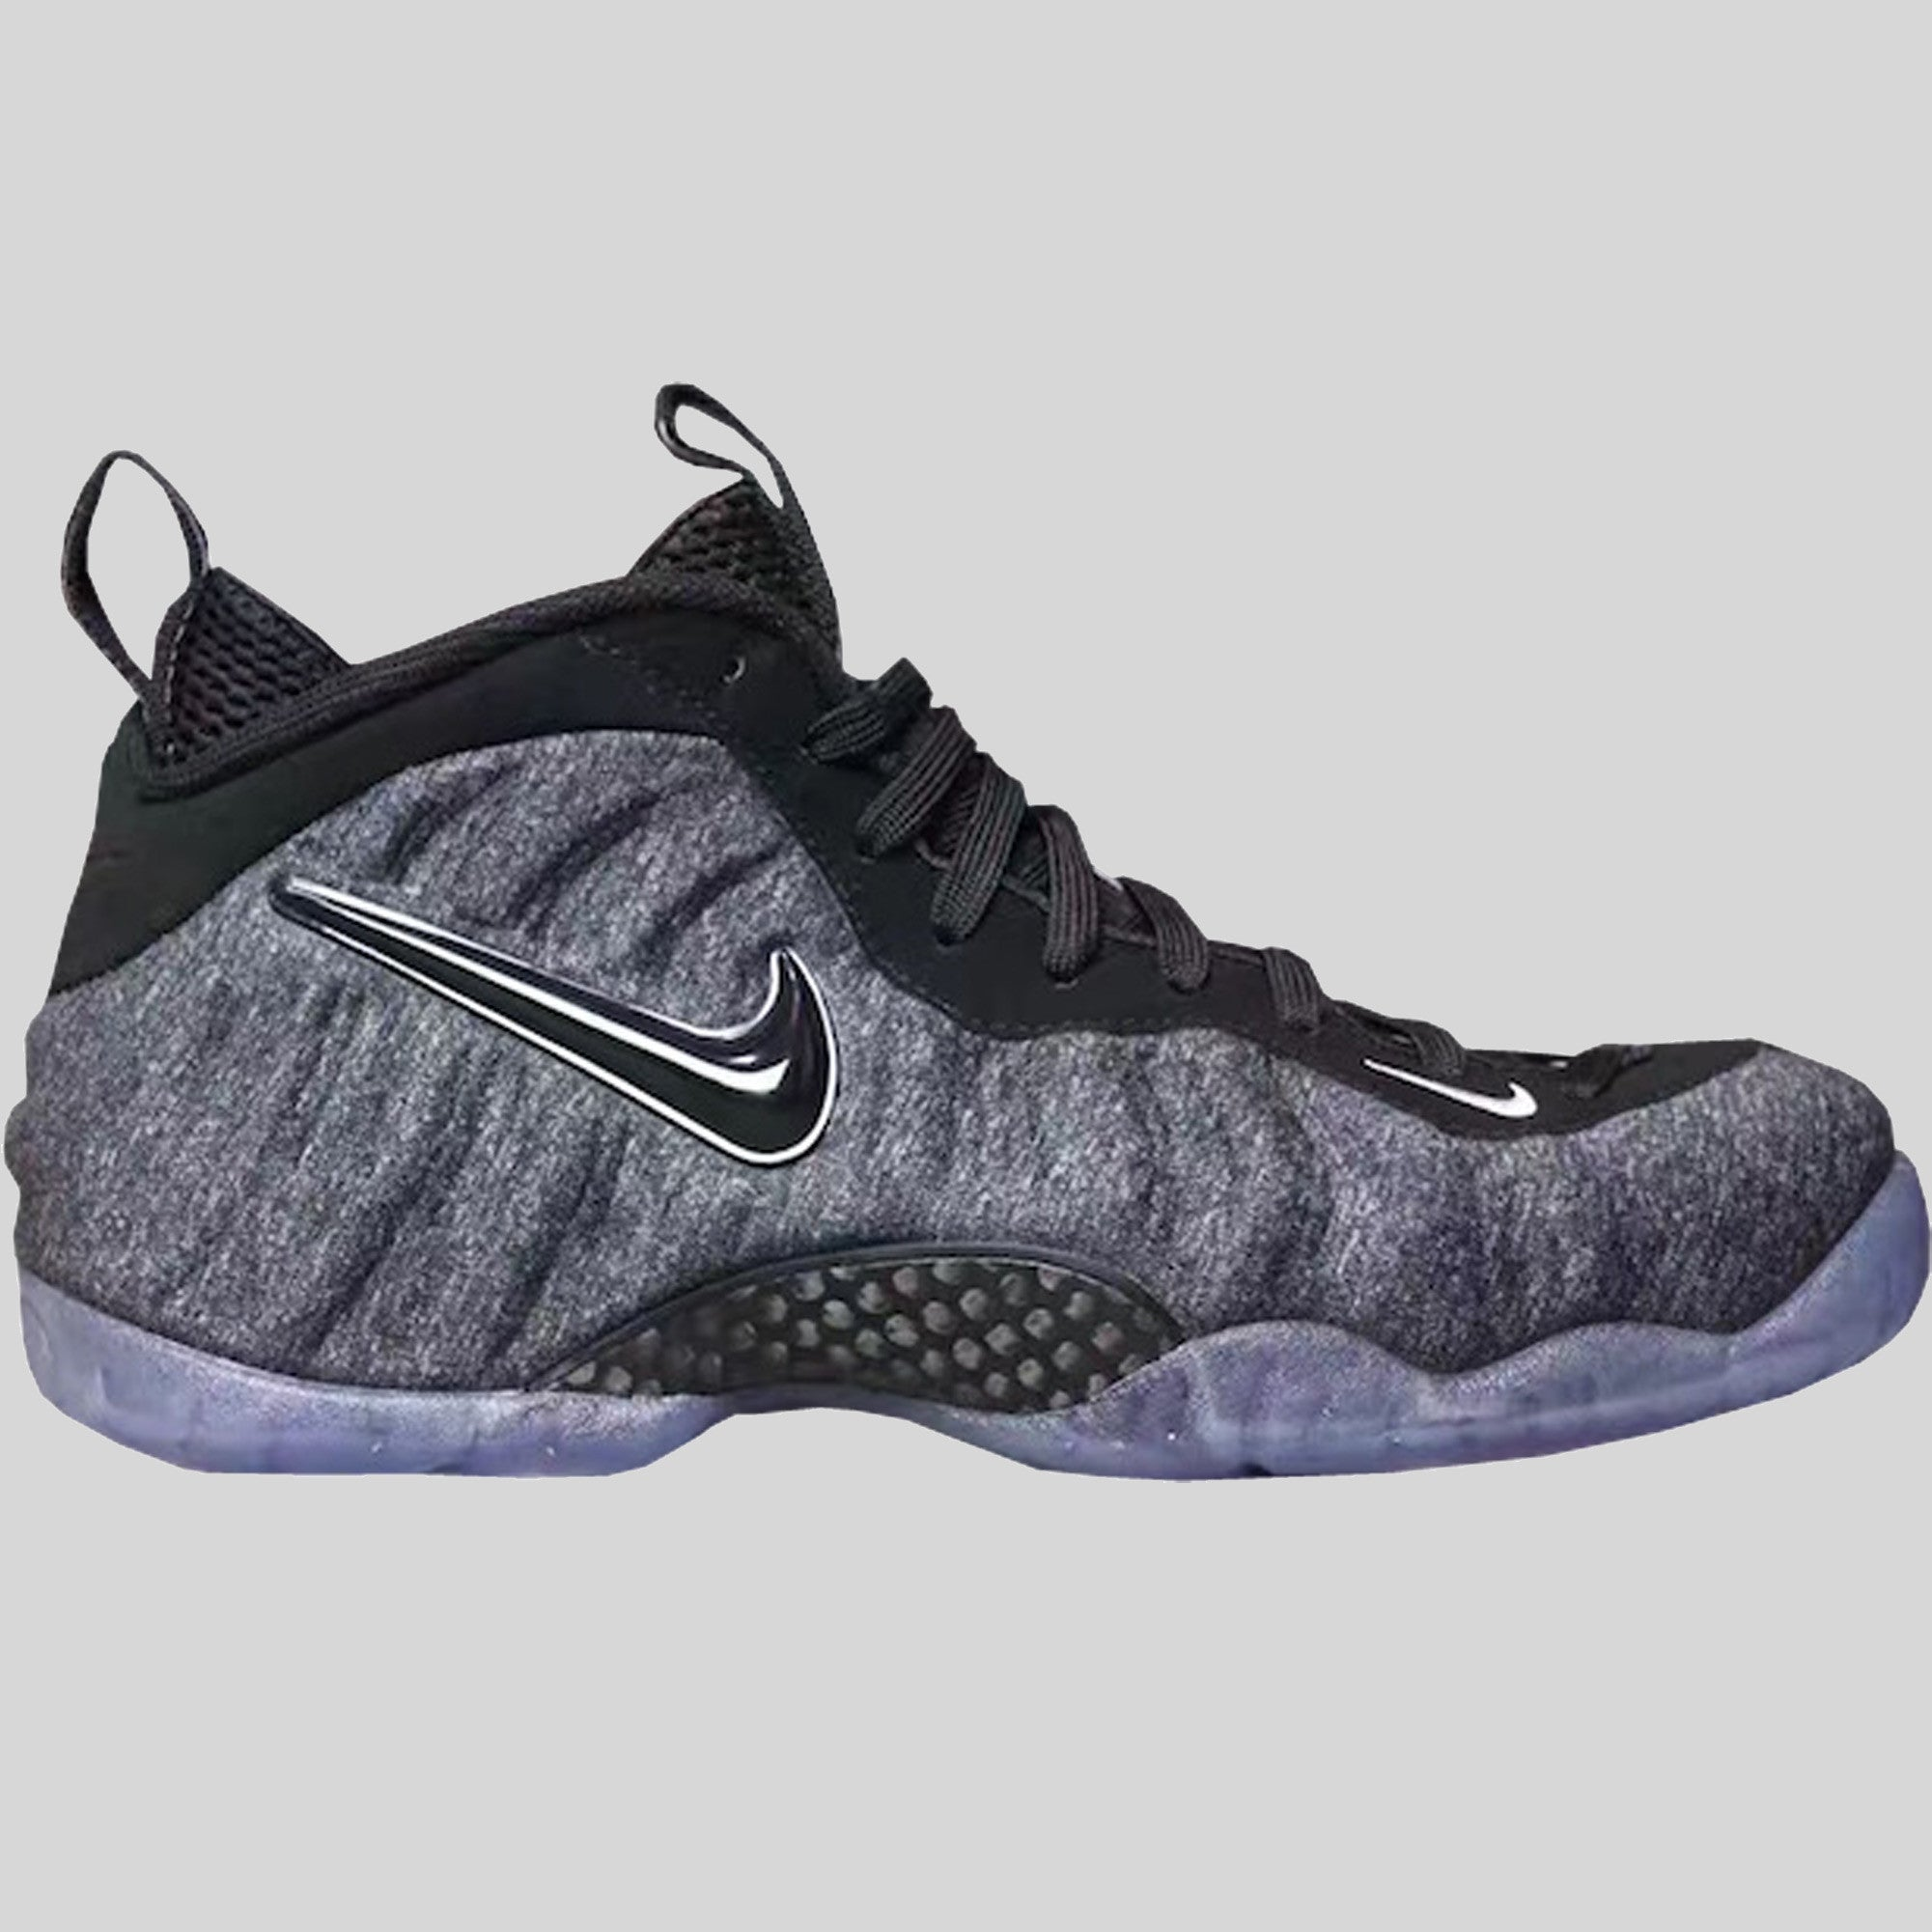 783c100a797b Nike Air Foamposite Pro Dark Grey Heather Black (624041-007)